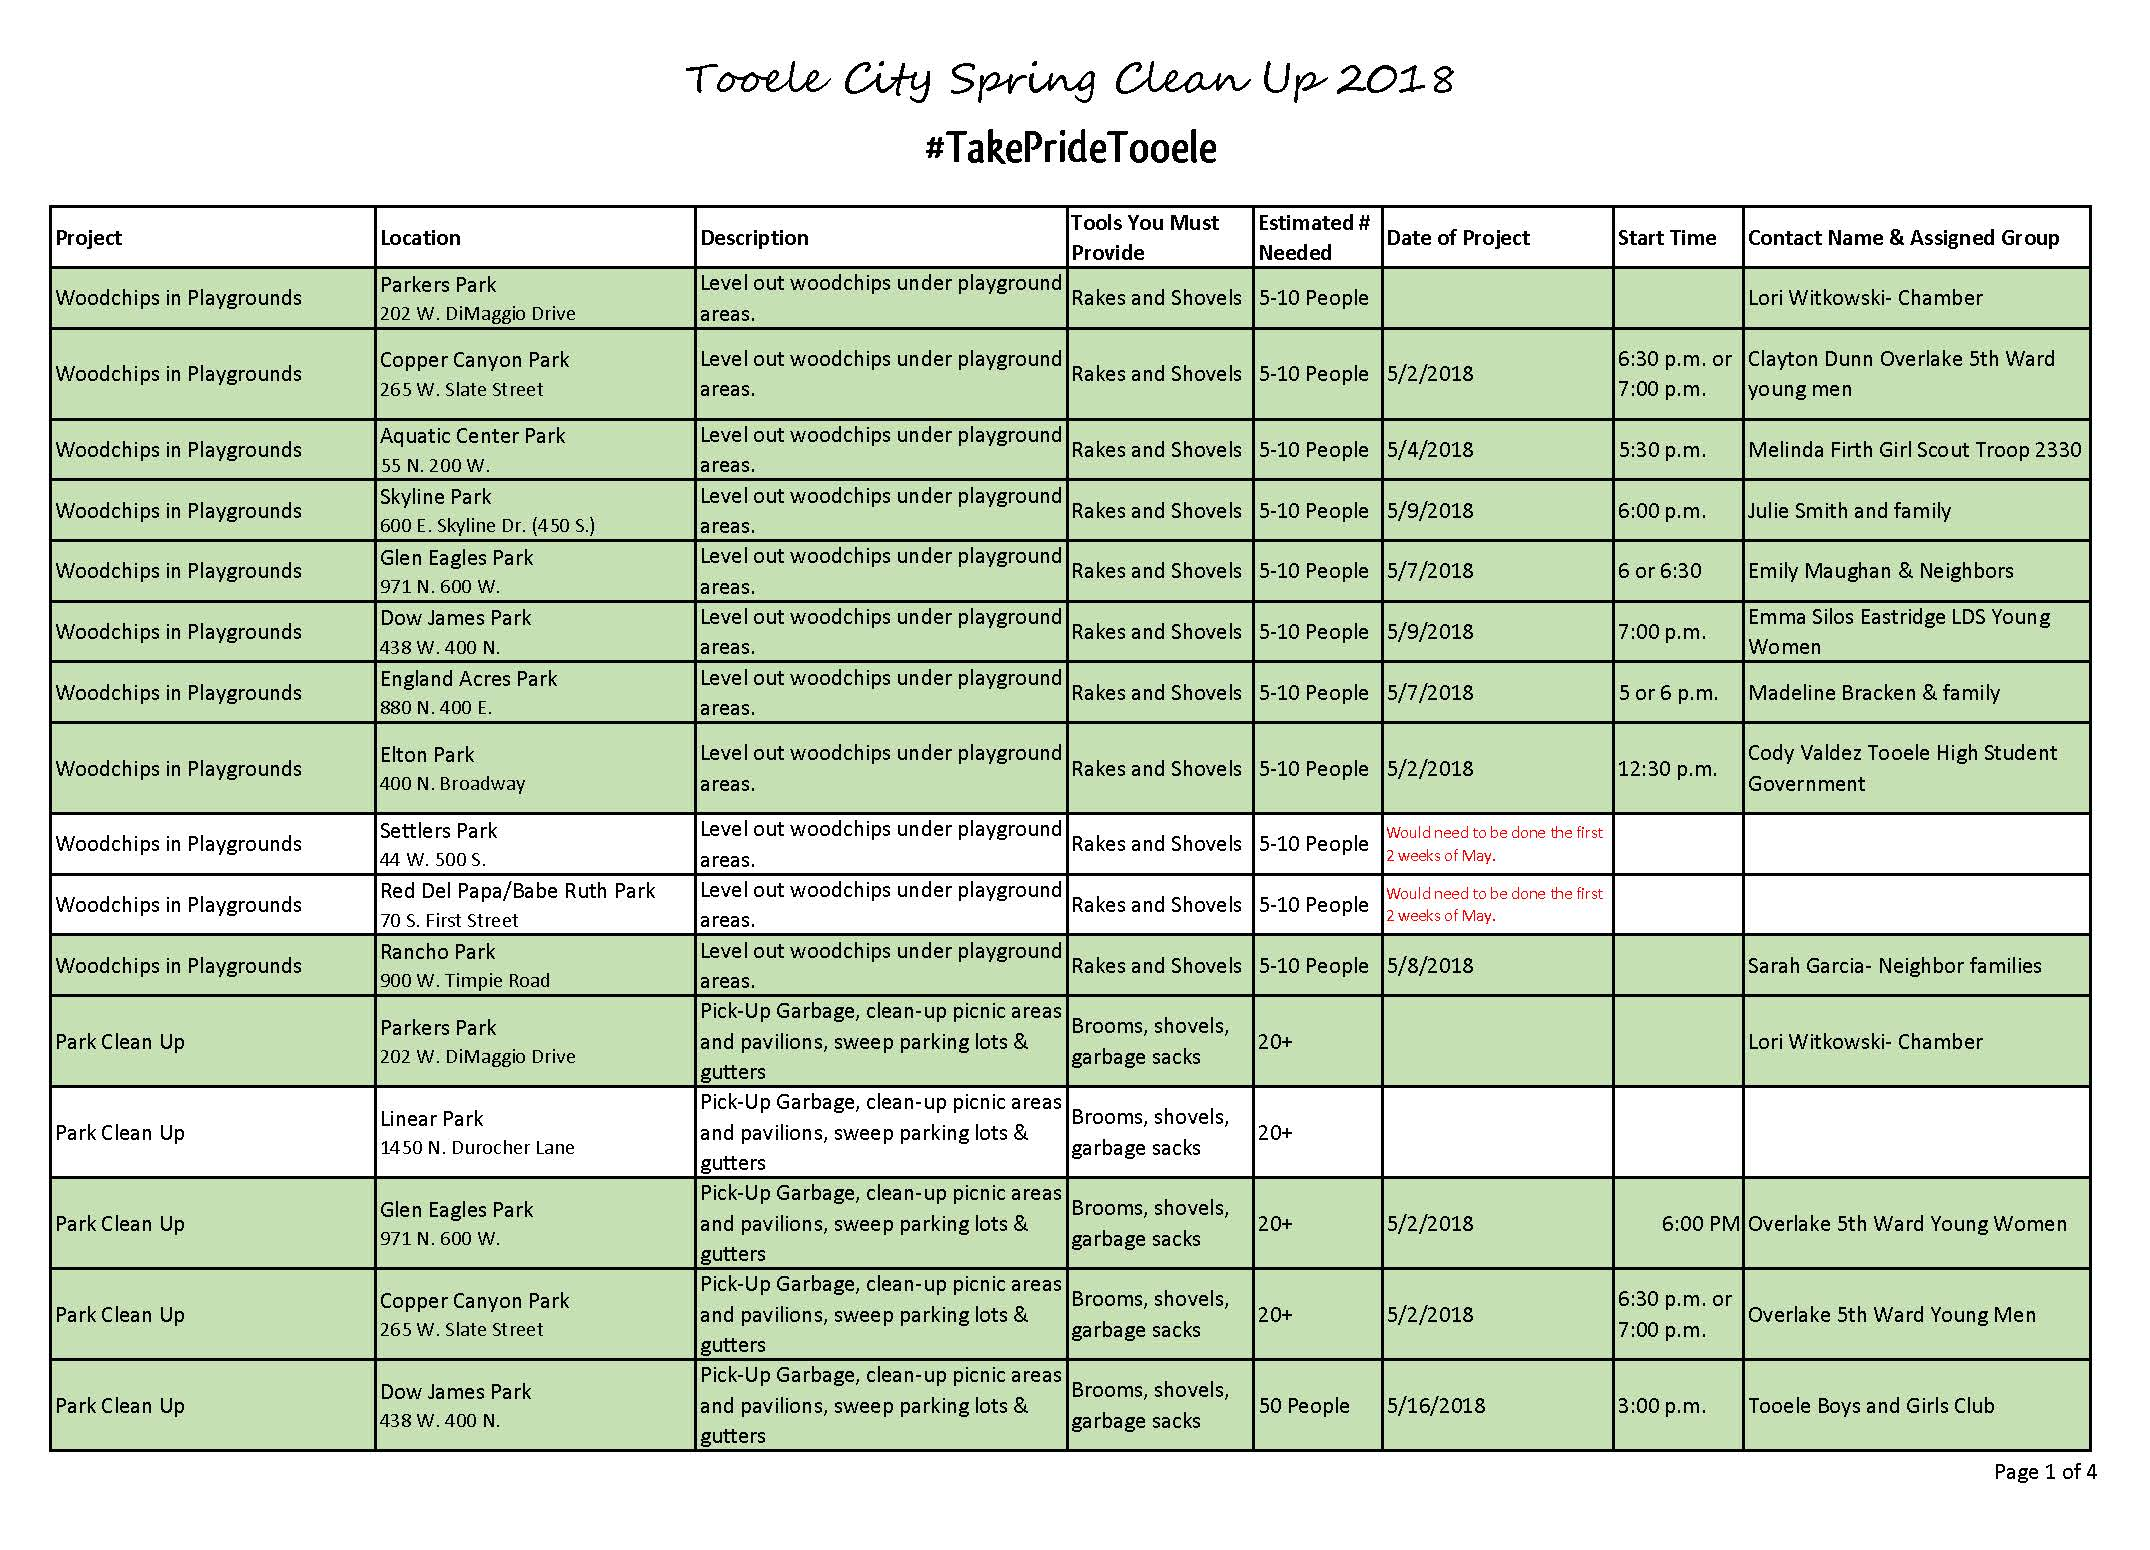 Projects for Spring Clean Up 2018 - Updated (05-11-18)